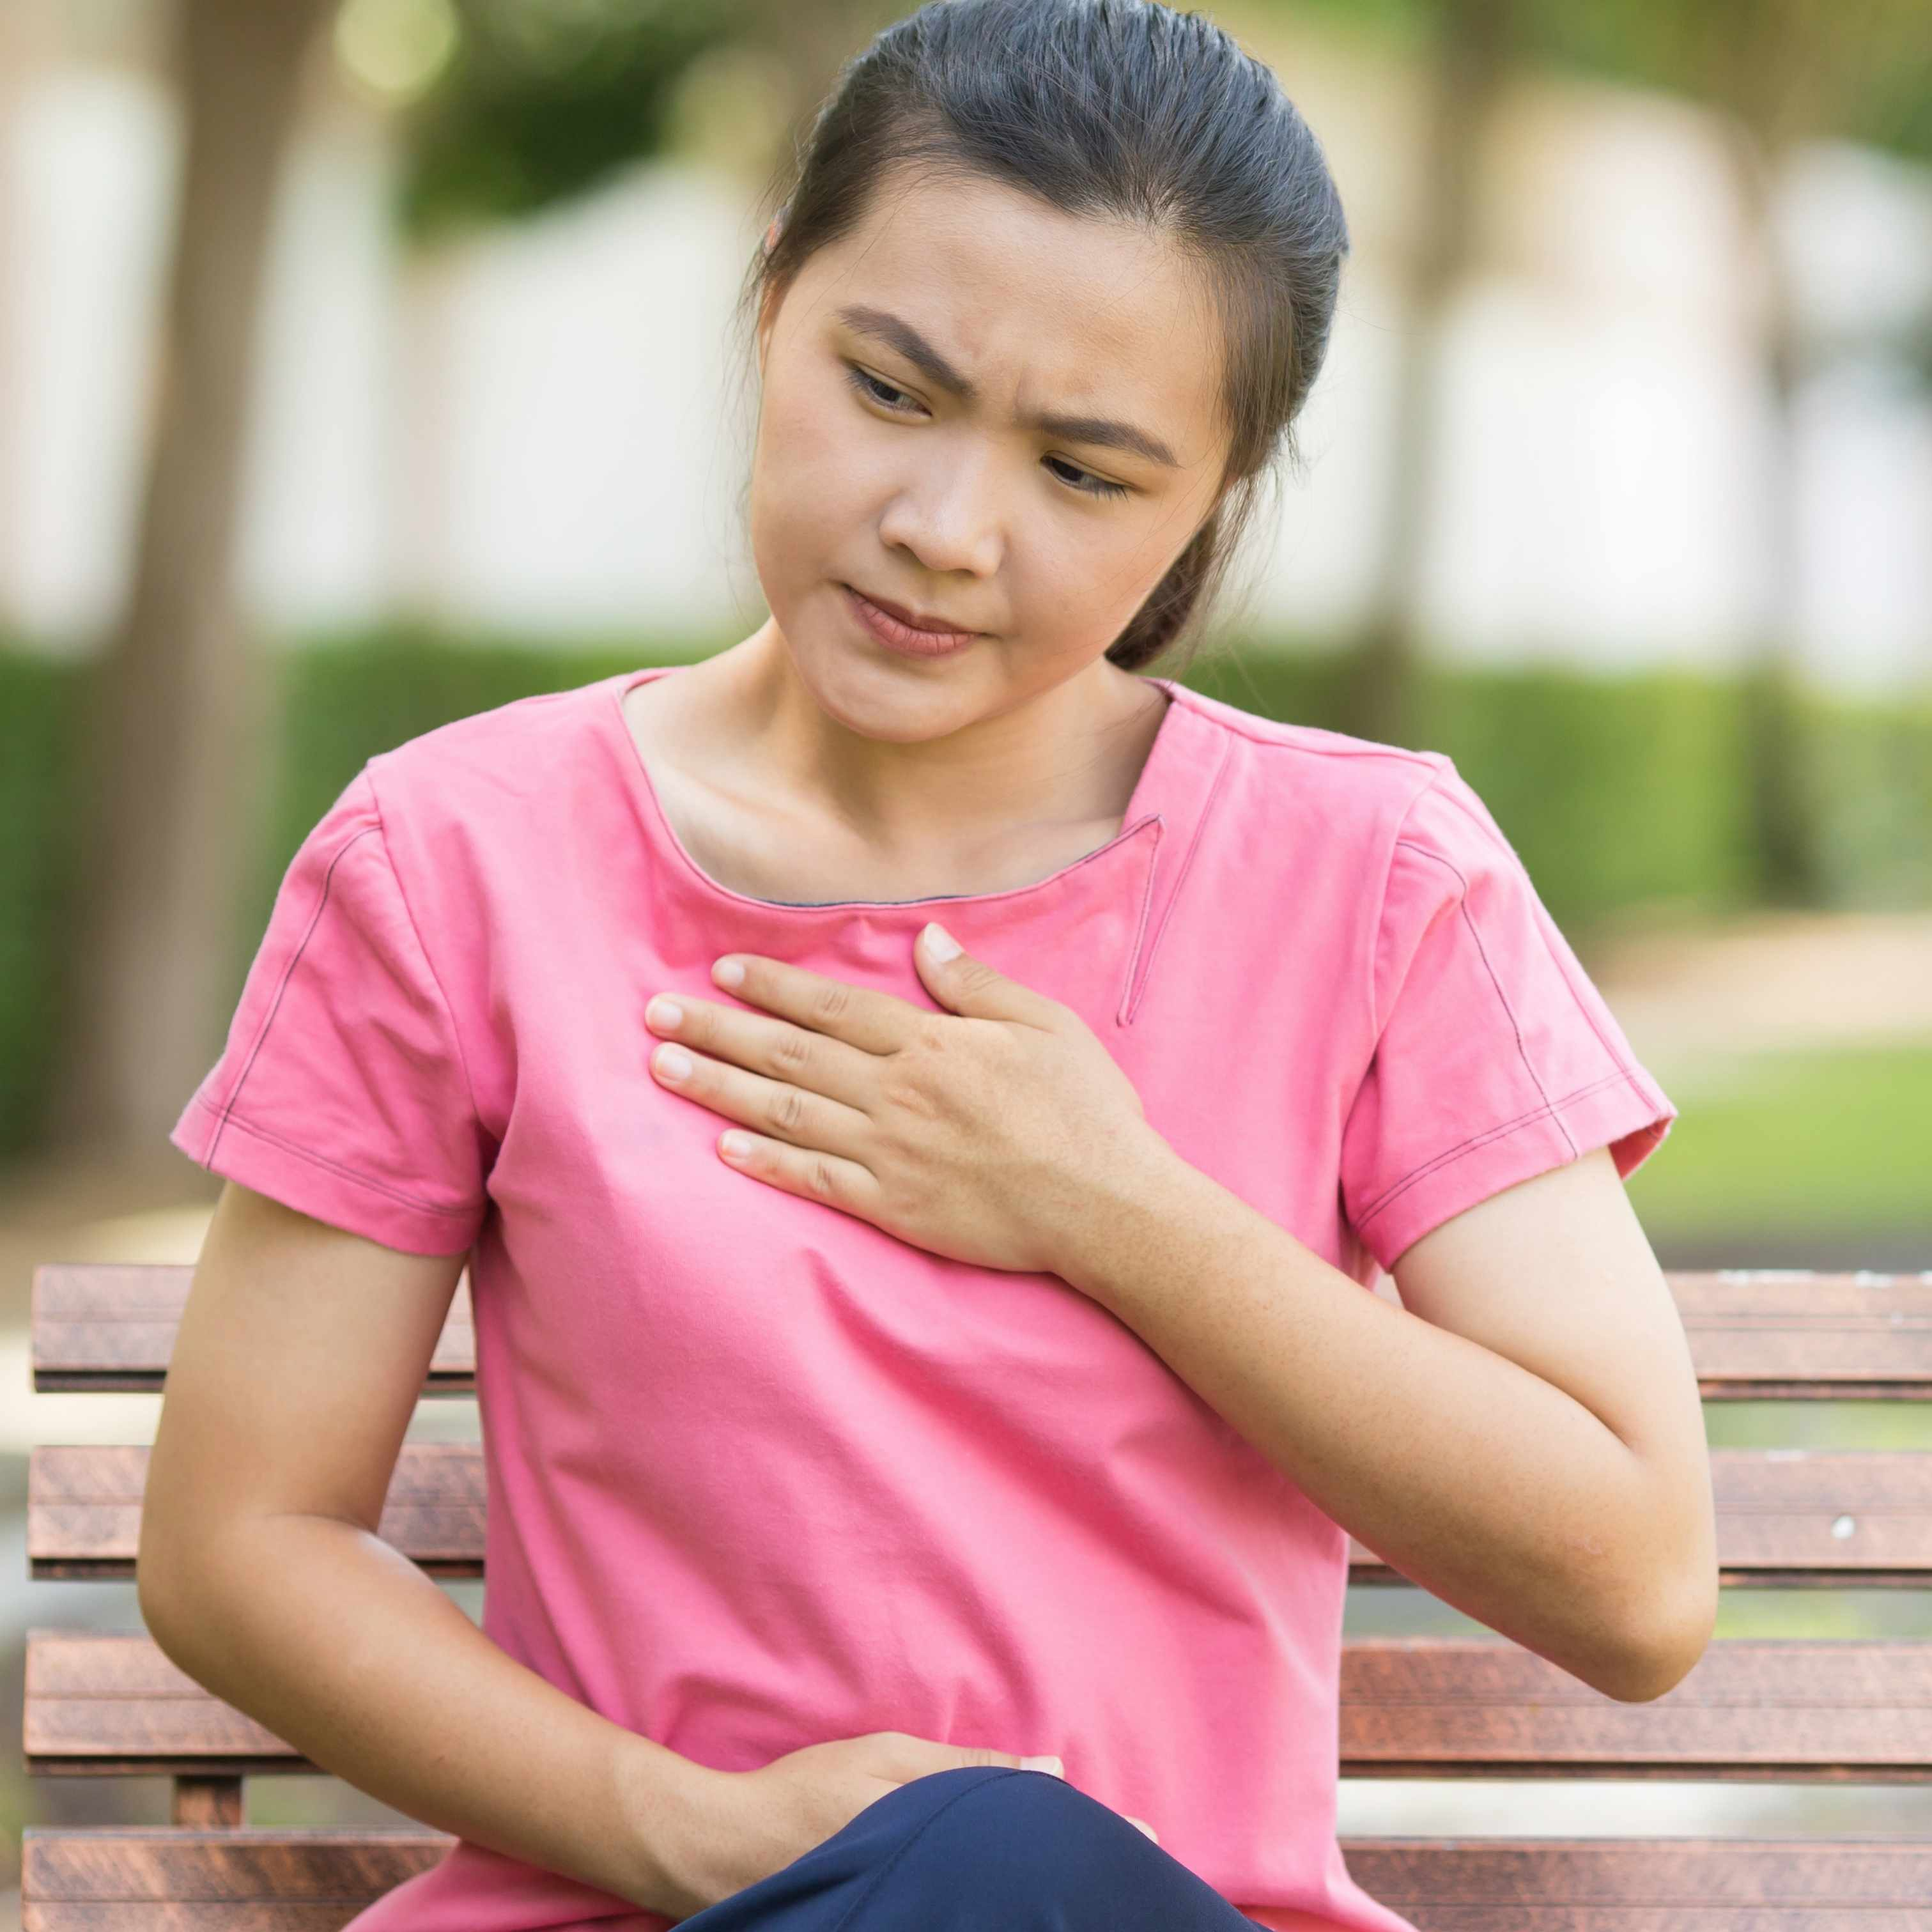 a young woman sitting on a park bench holding her chest because of heartburn or discomfort